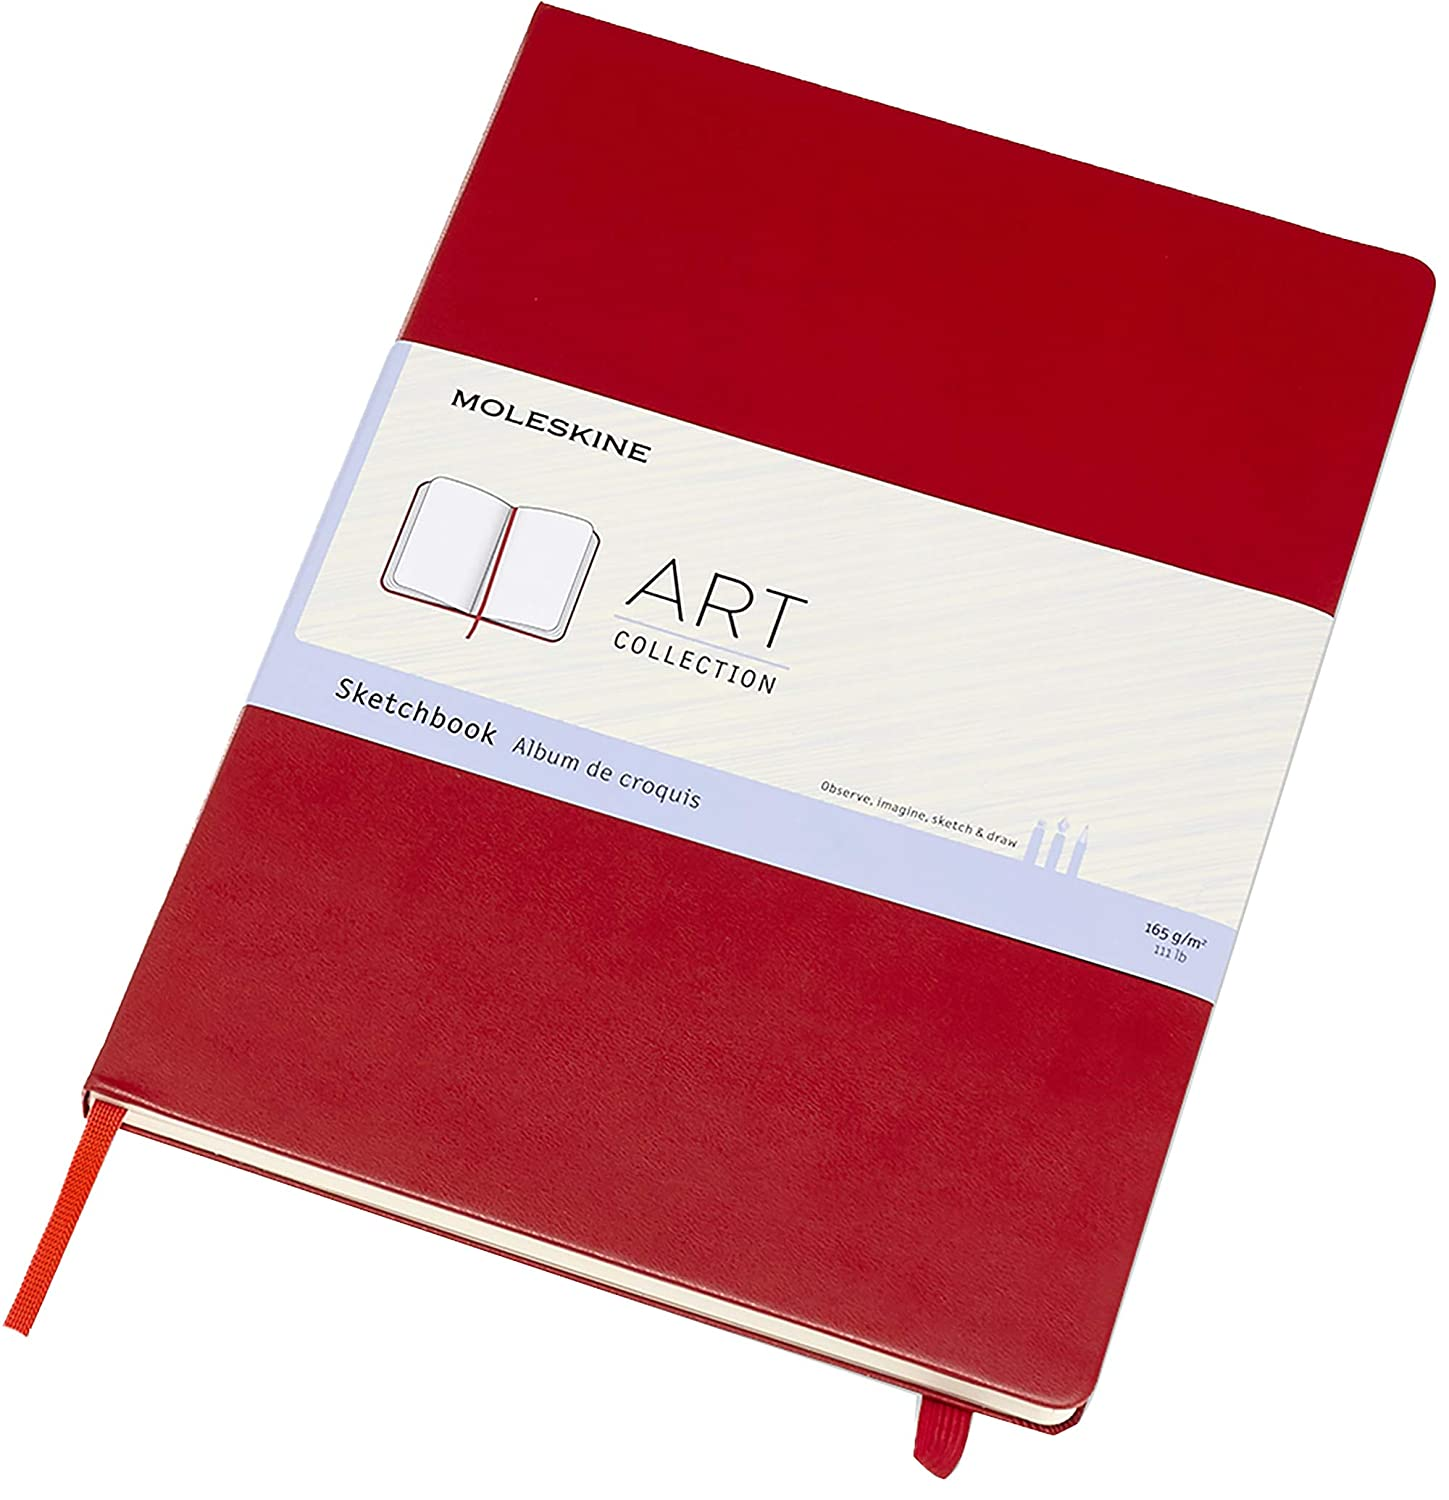 Moleskine 21 x 29.7 cm A4 Size Art Collection Sketchbook Album for Sketching Hard Cover Paper Suitable for Pens Pencils and Pastels 96 Pages Colour Scarlet Red